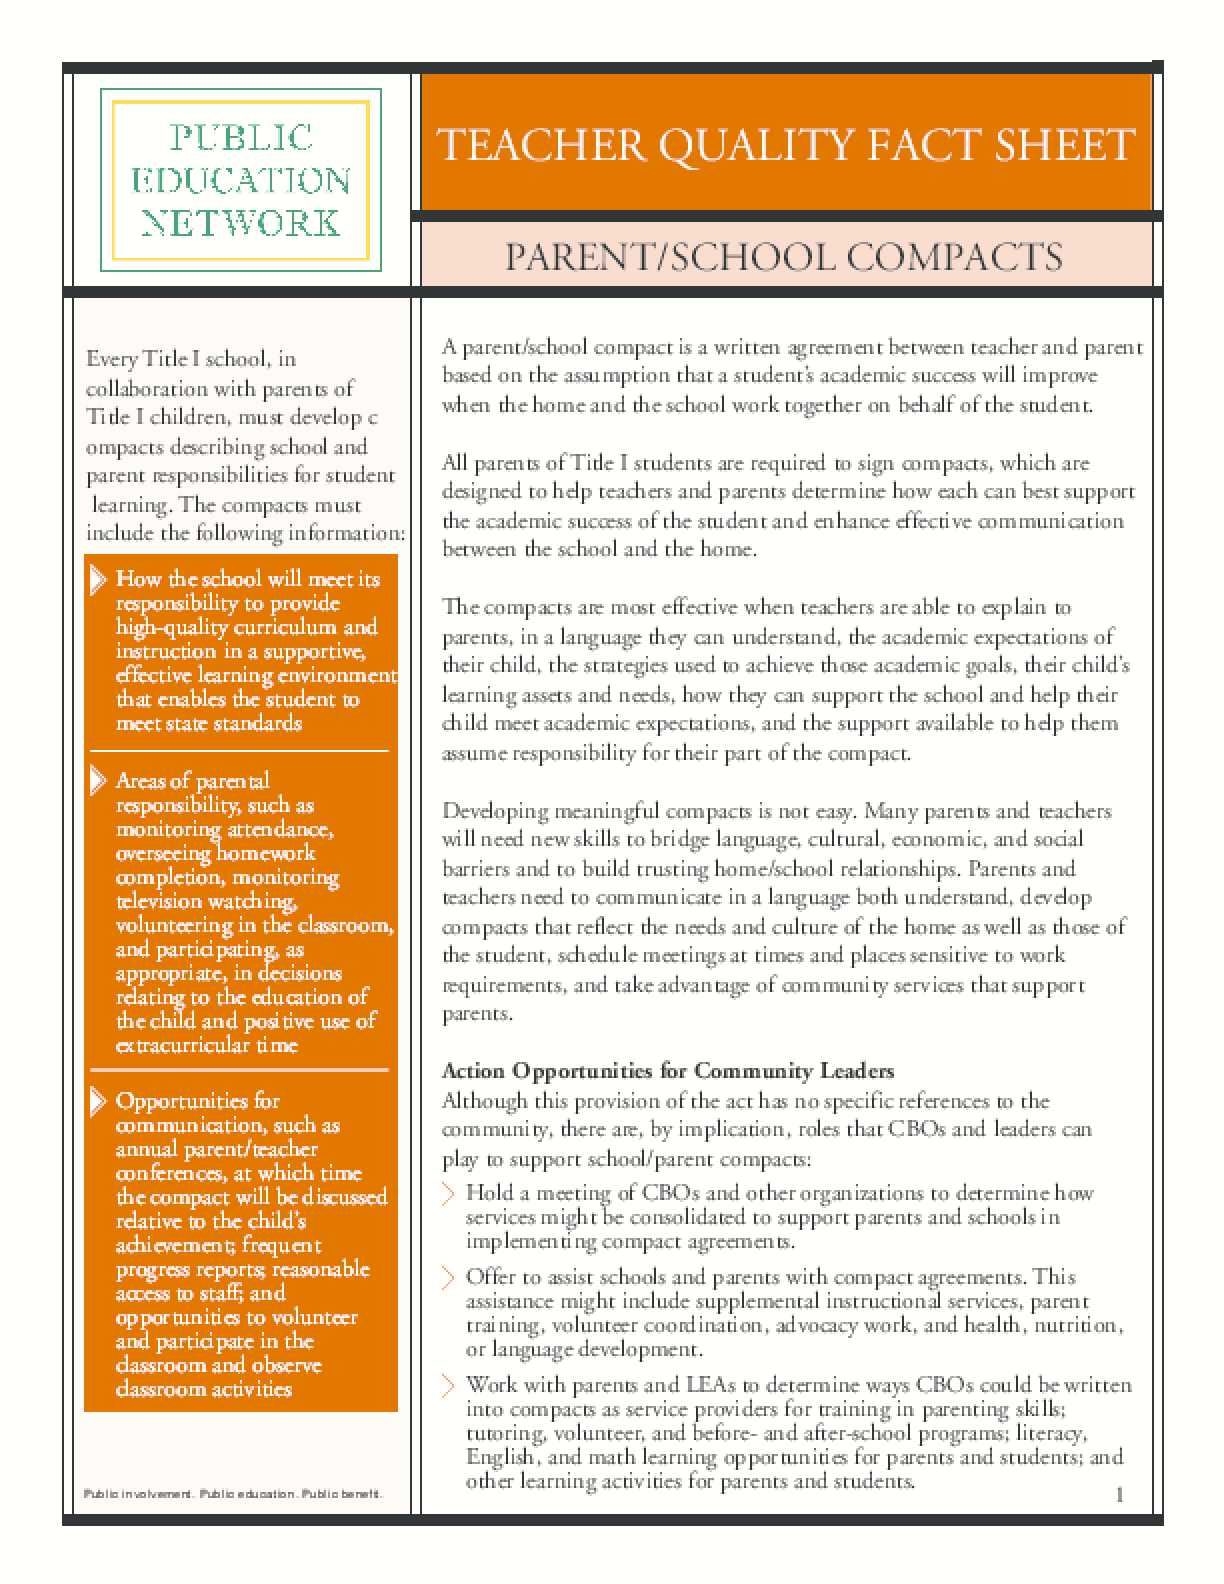 Teacher Quality Fact Sheet: Parent/School Compacts